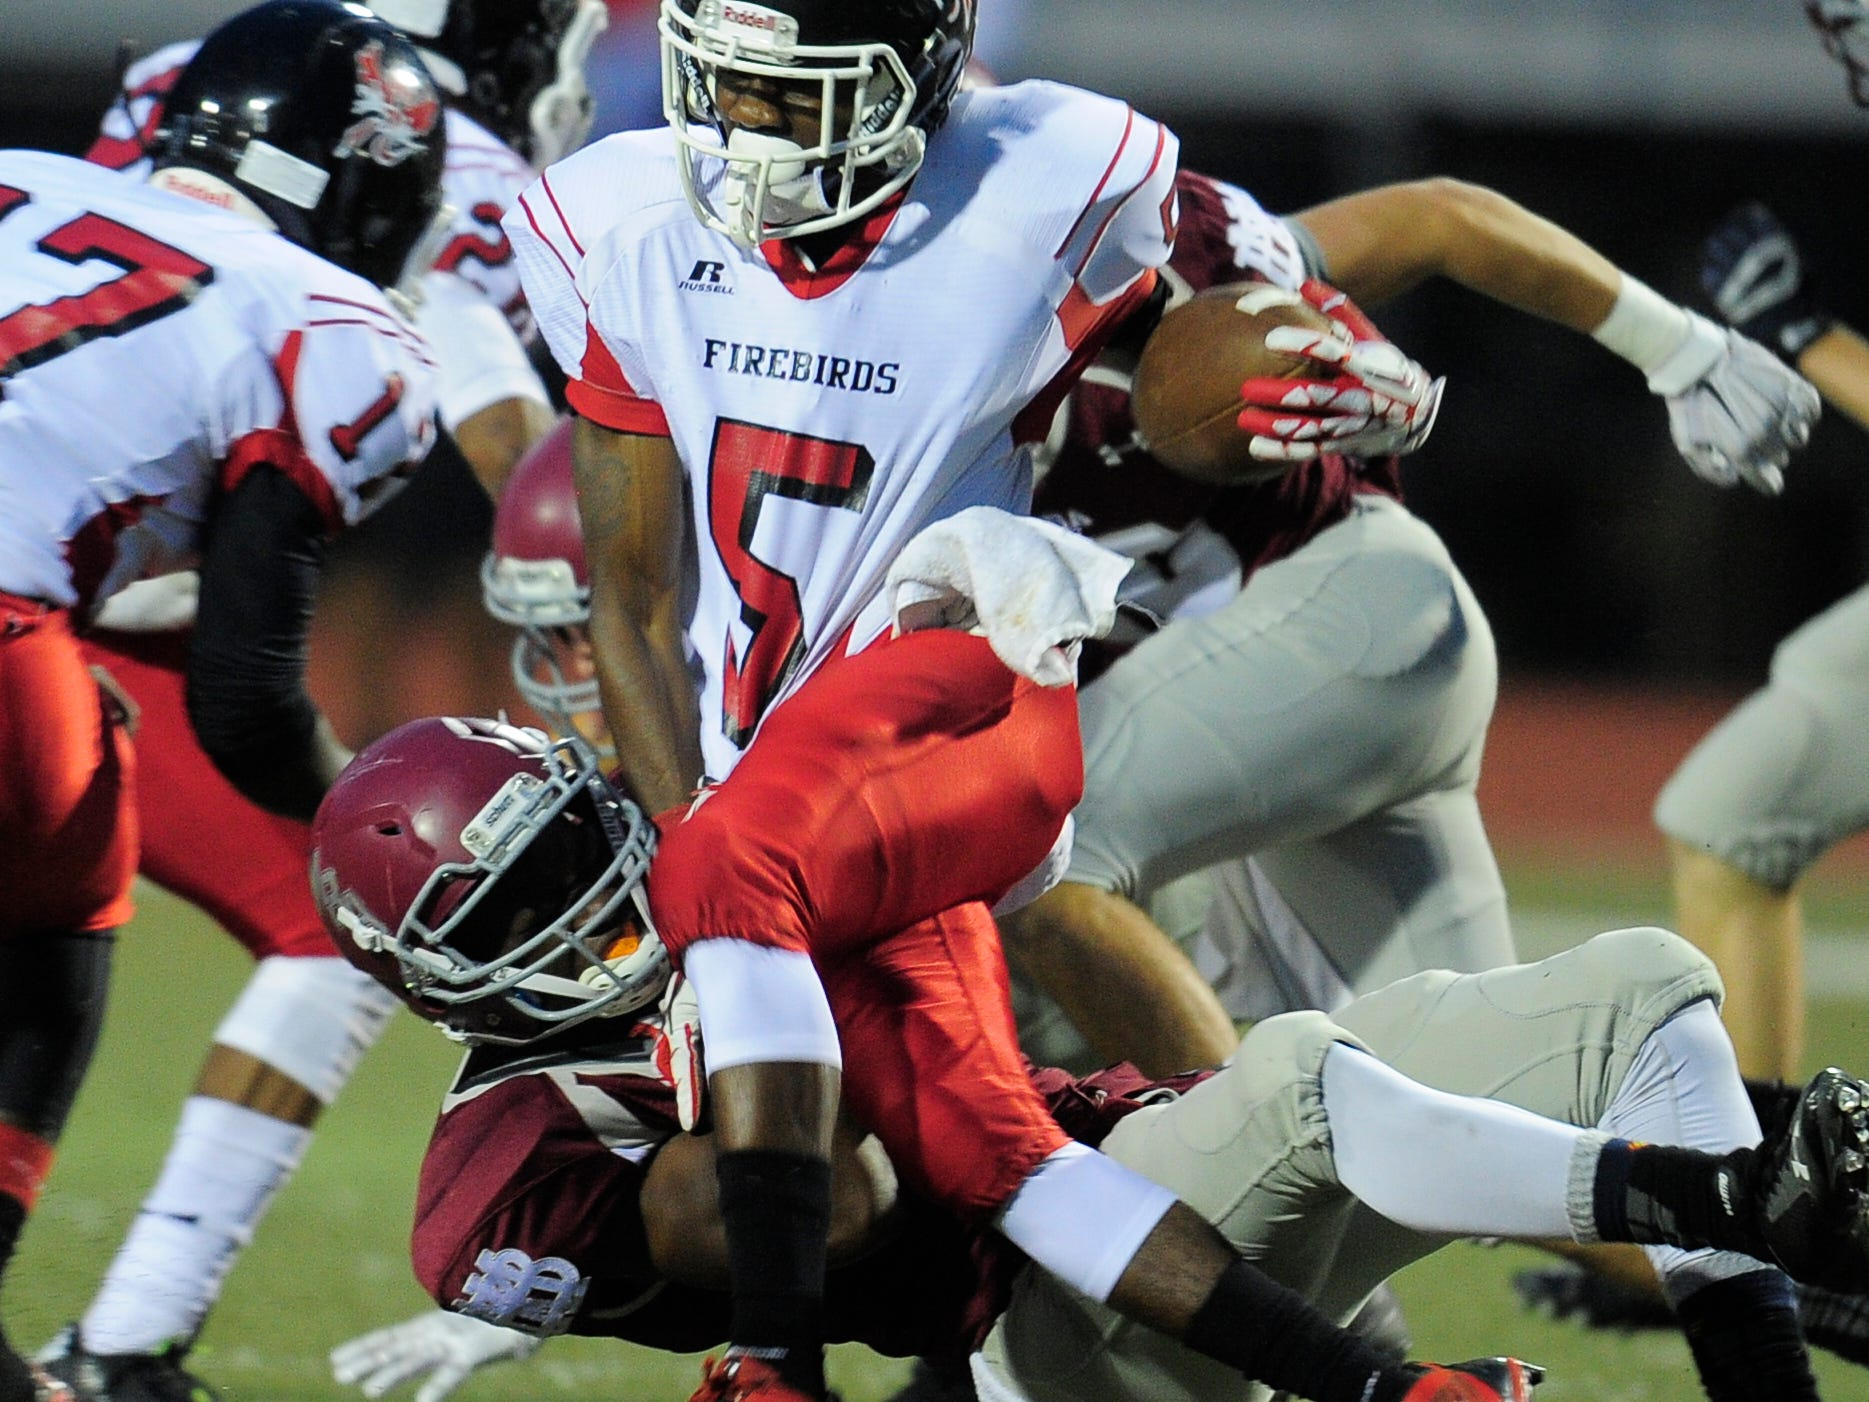 Pearl-Cohn running back Rontavius Groves (5) is pulled down by a MBA defender during their game this season. The Firebirds have just one loss.